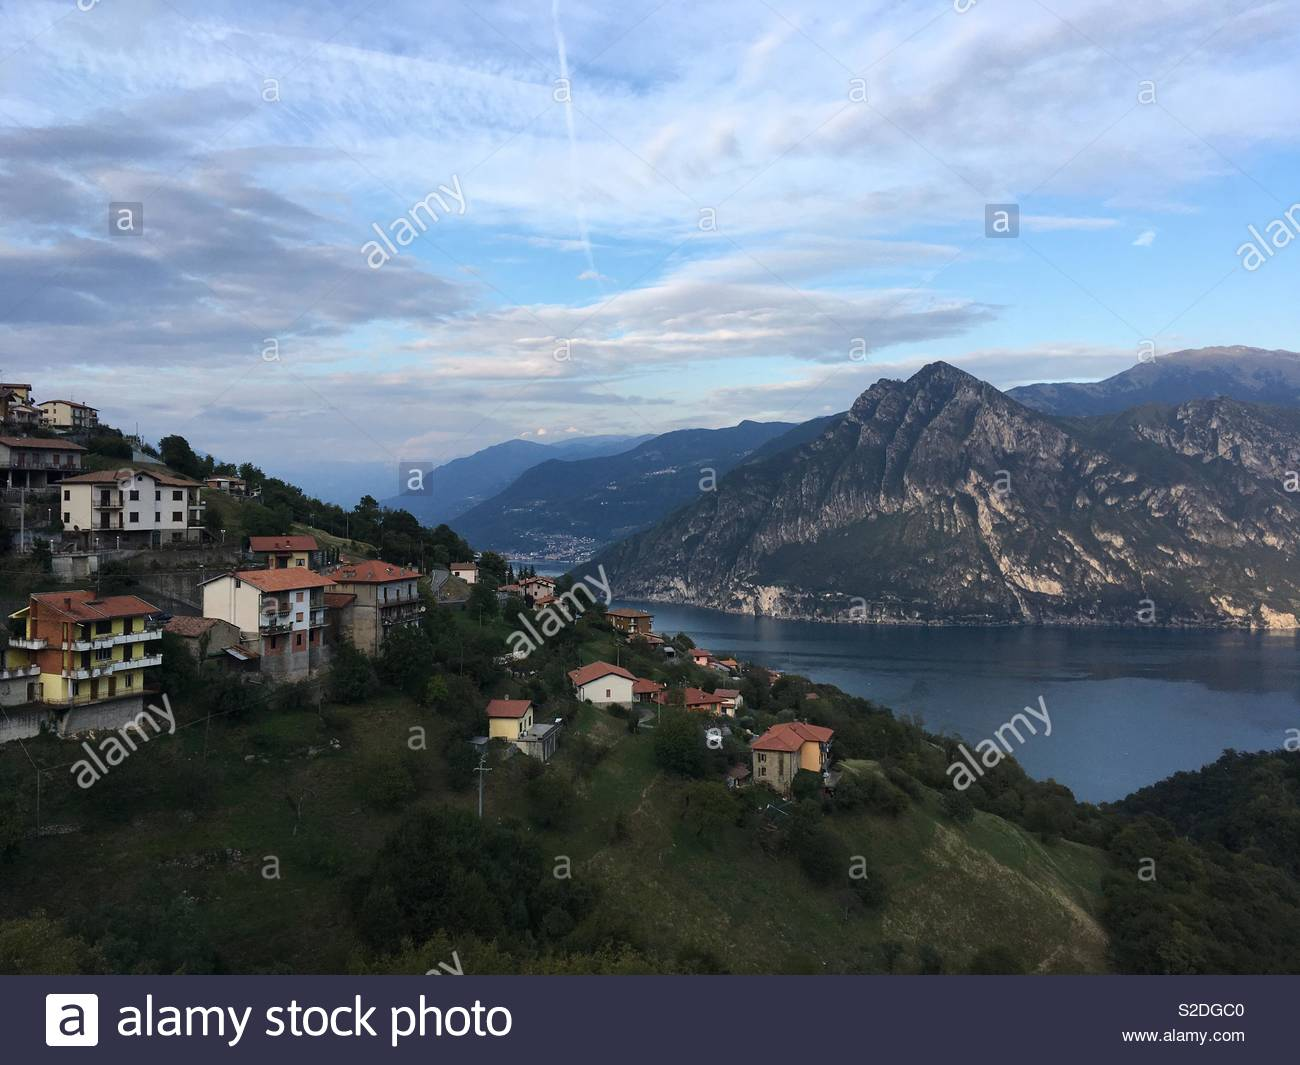 Lake Iseo in Italy - Stock Image